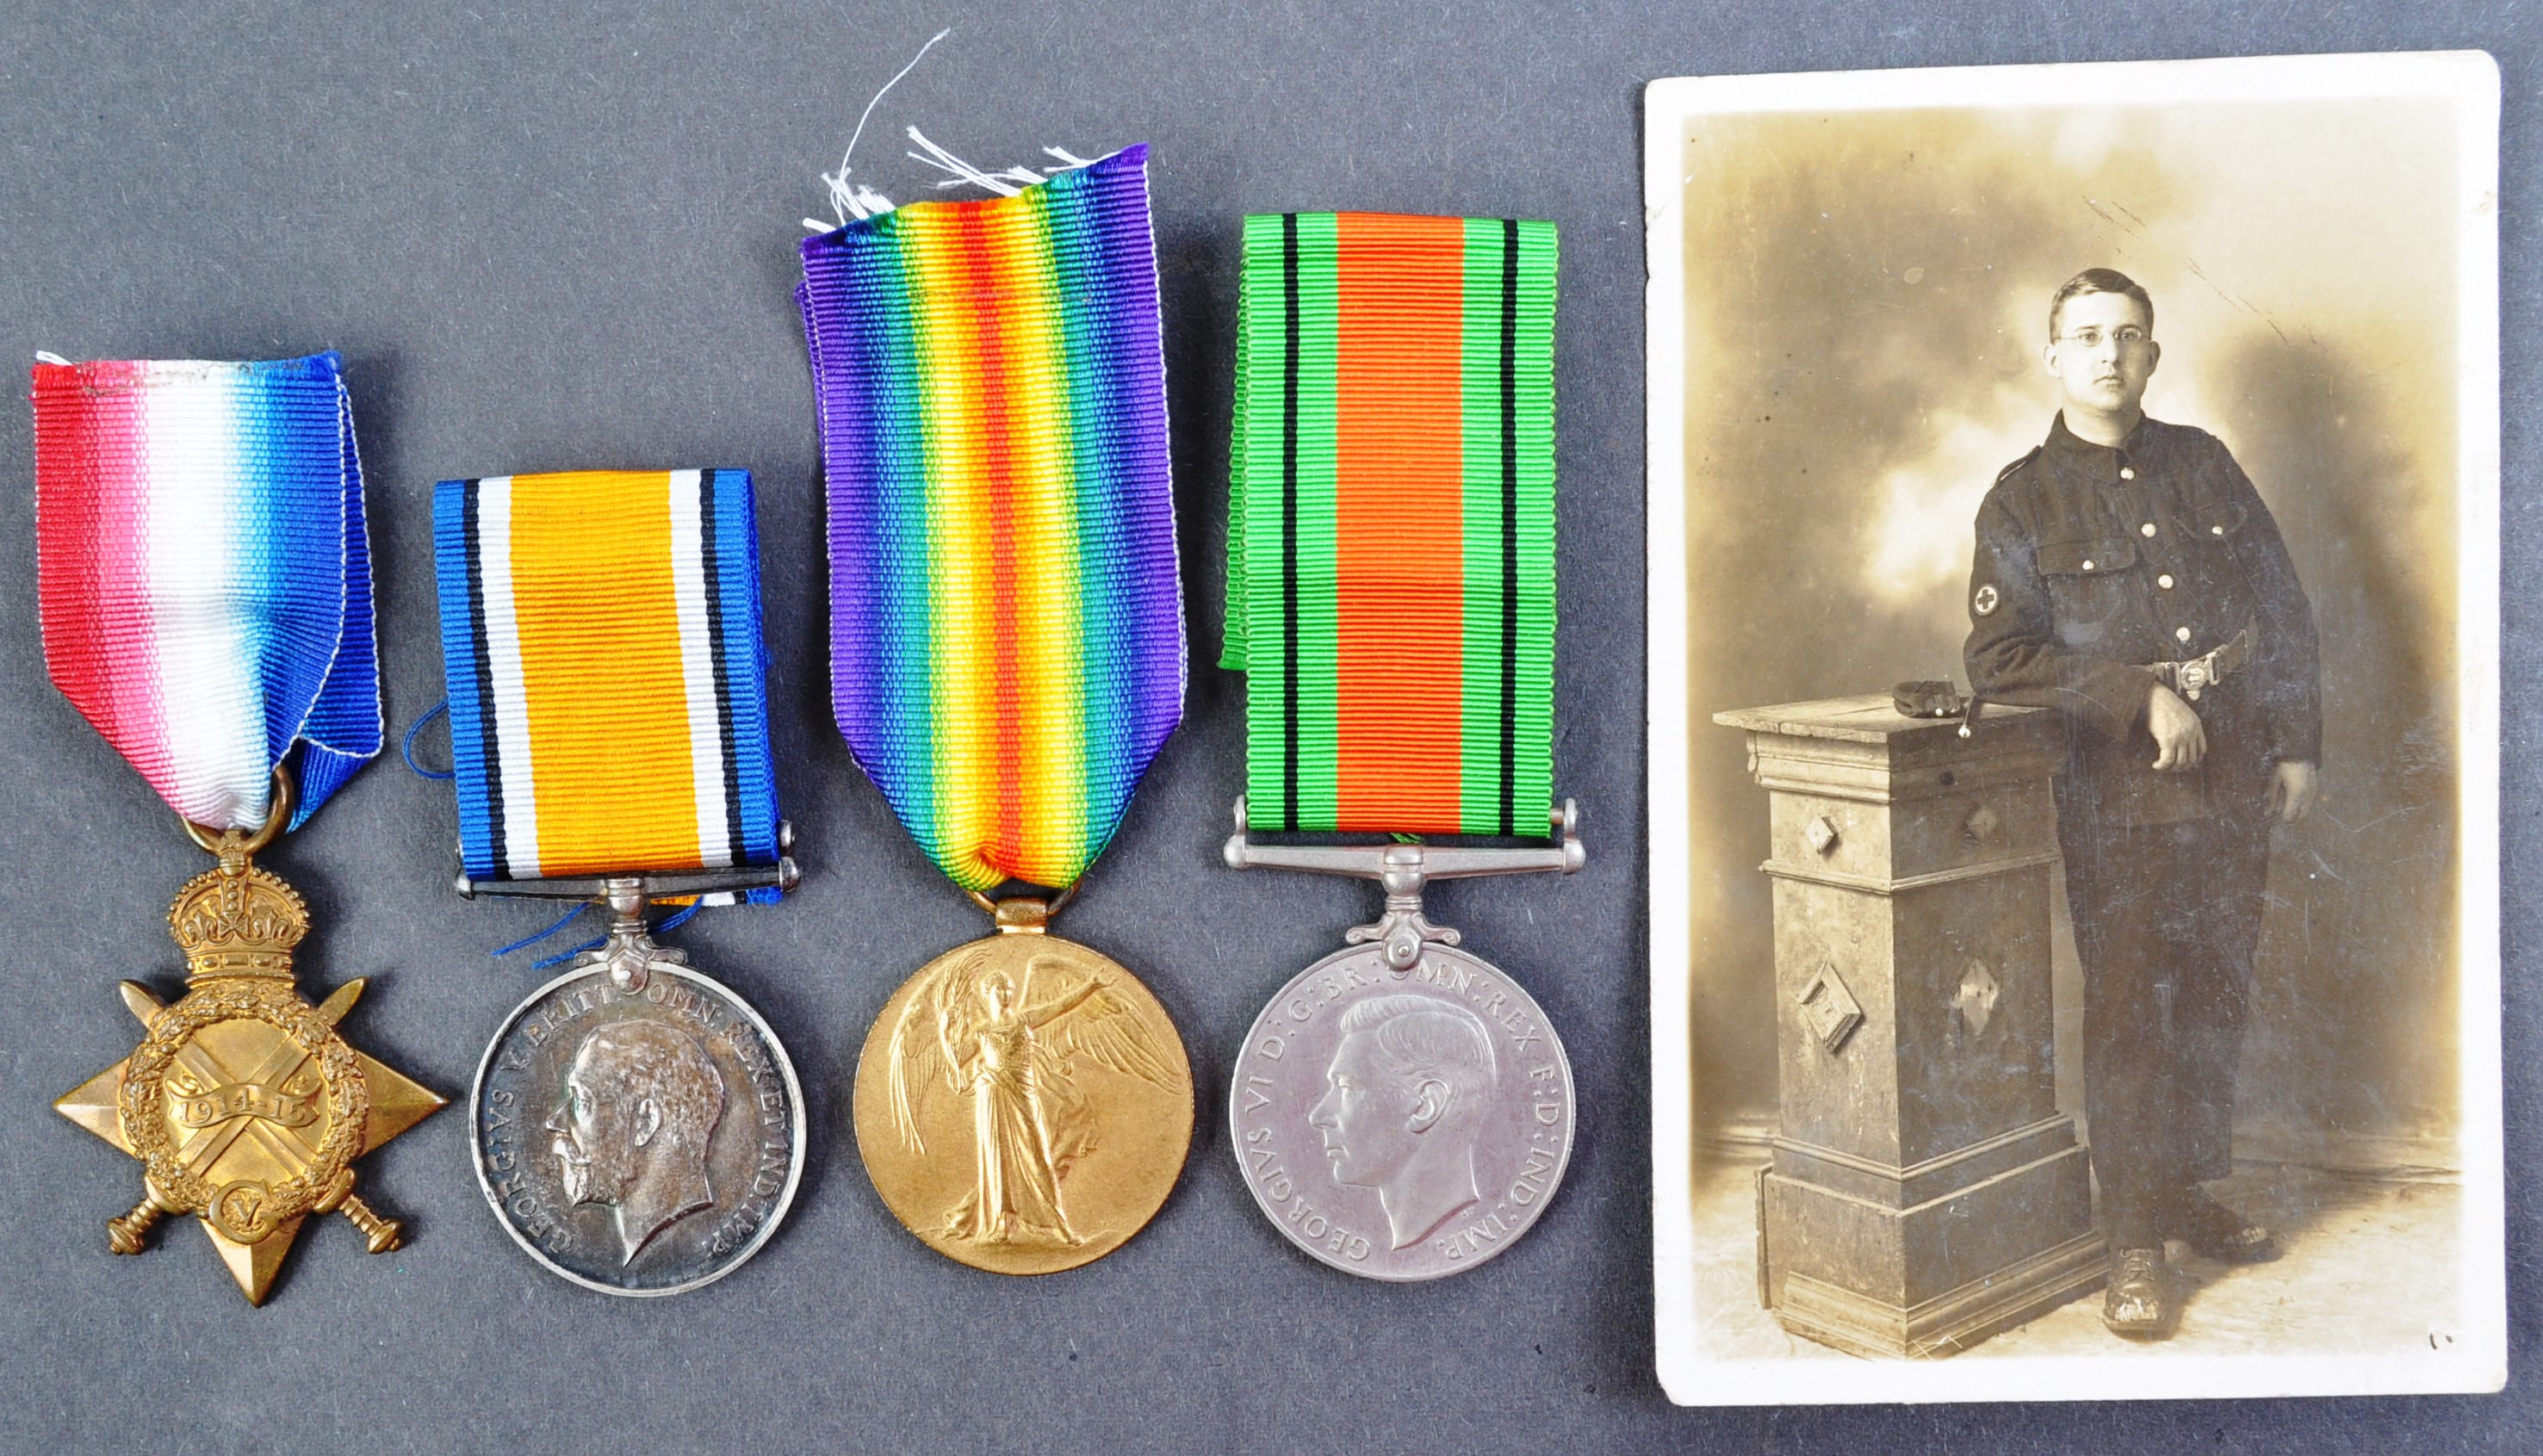 WWI & WWII INTEREST MEDAL GROUP - ACTING SERGEANT IN THE RAMC